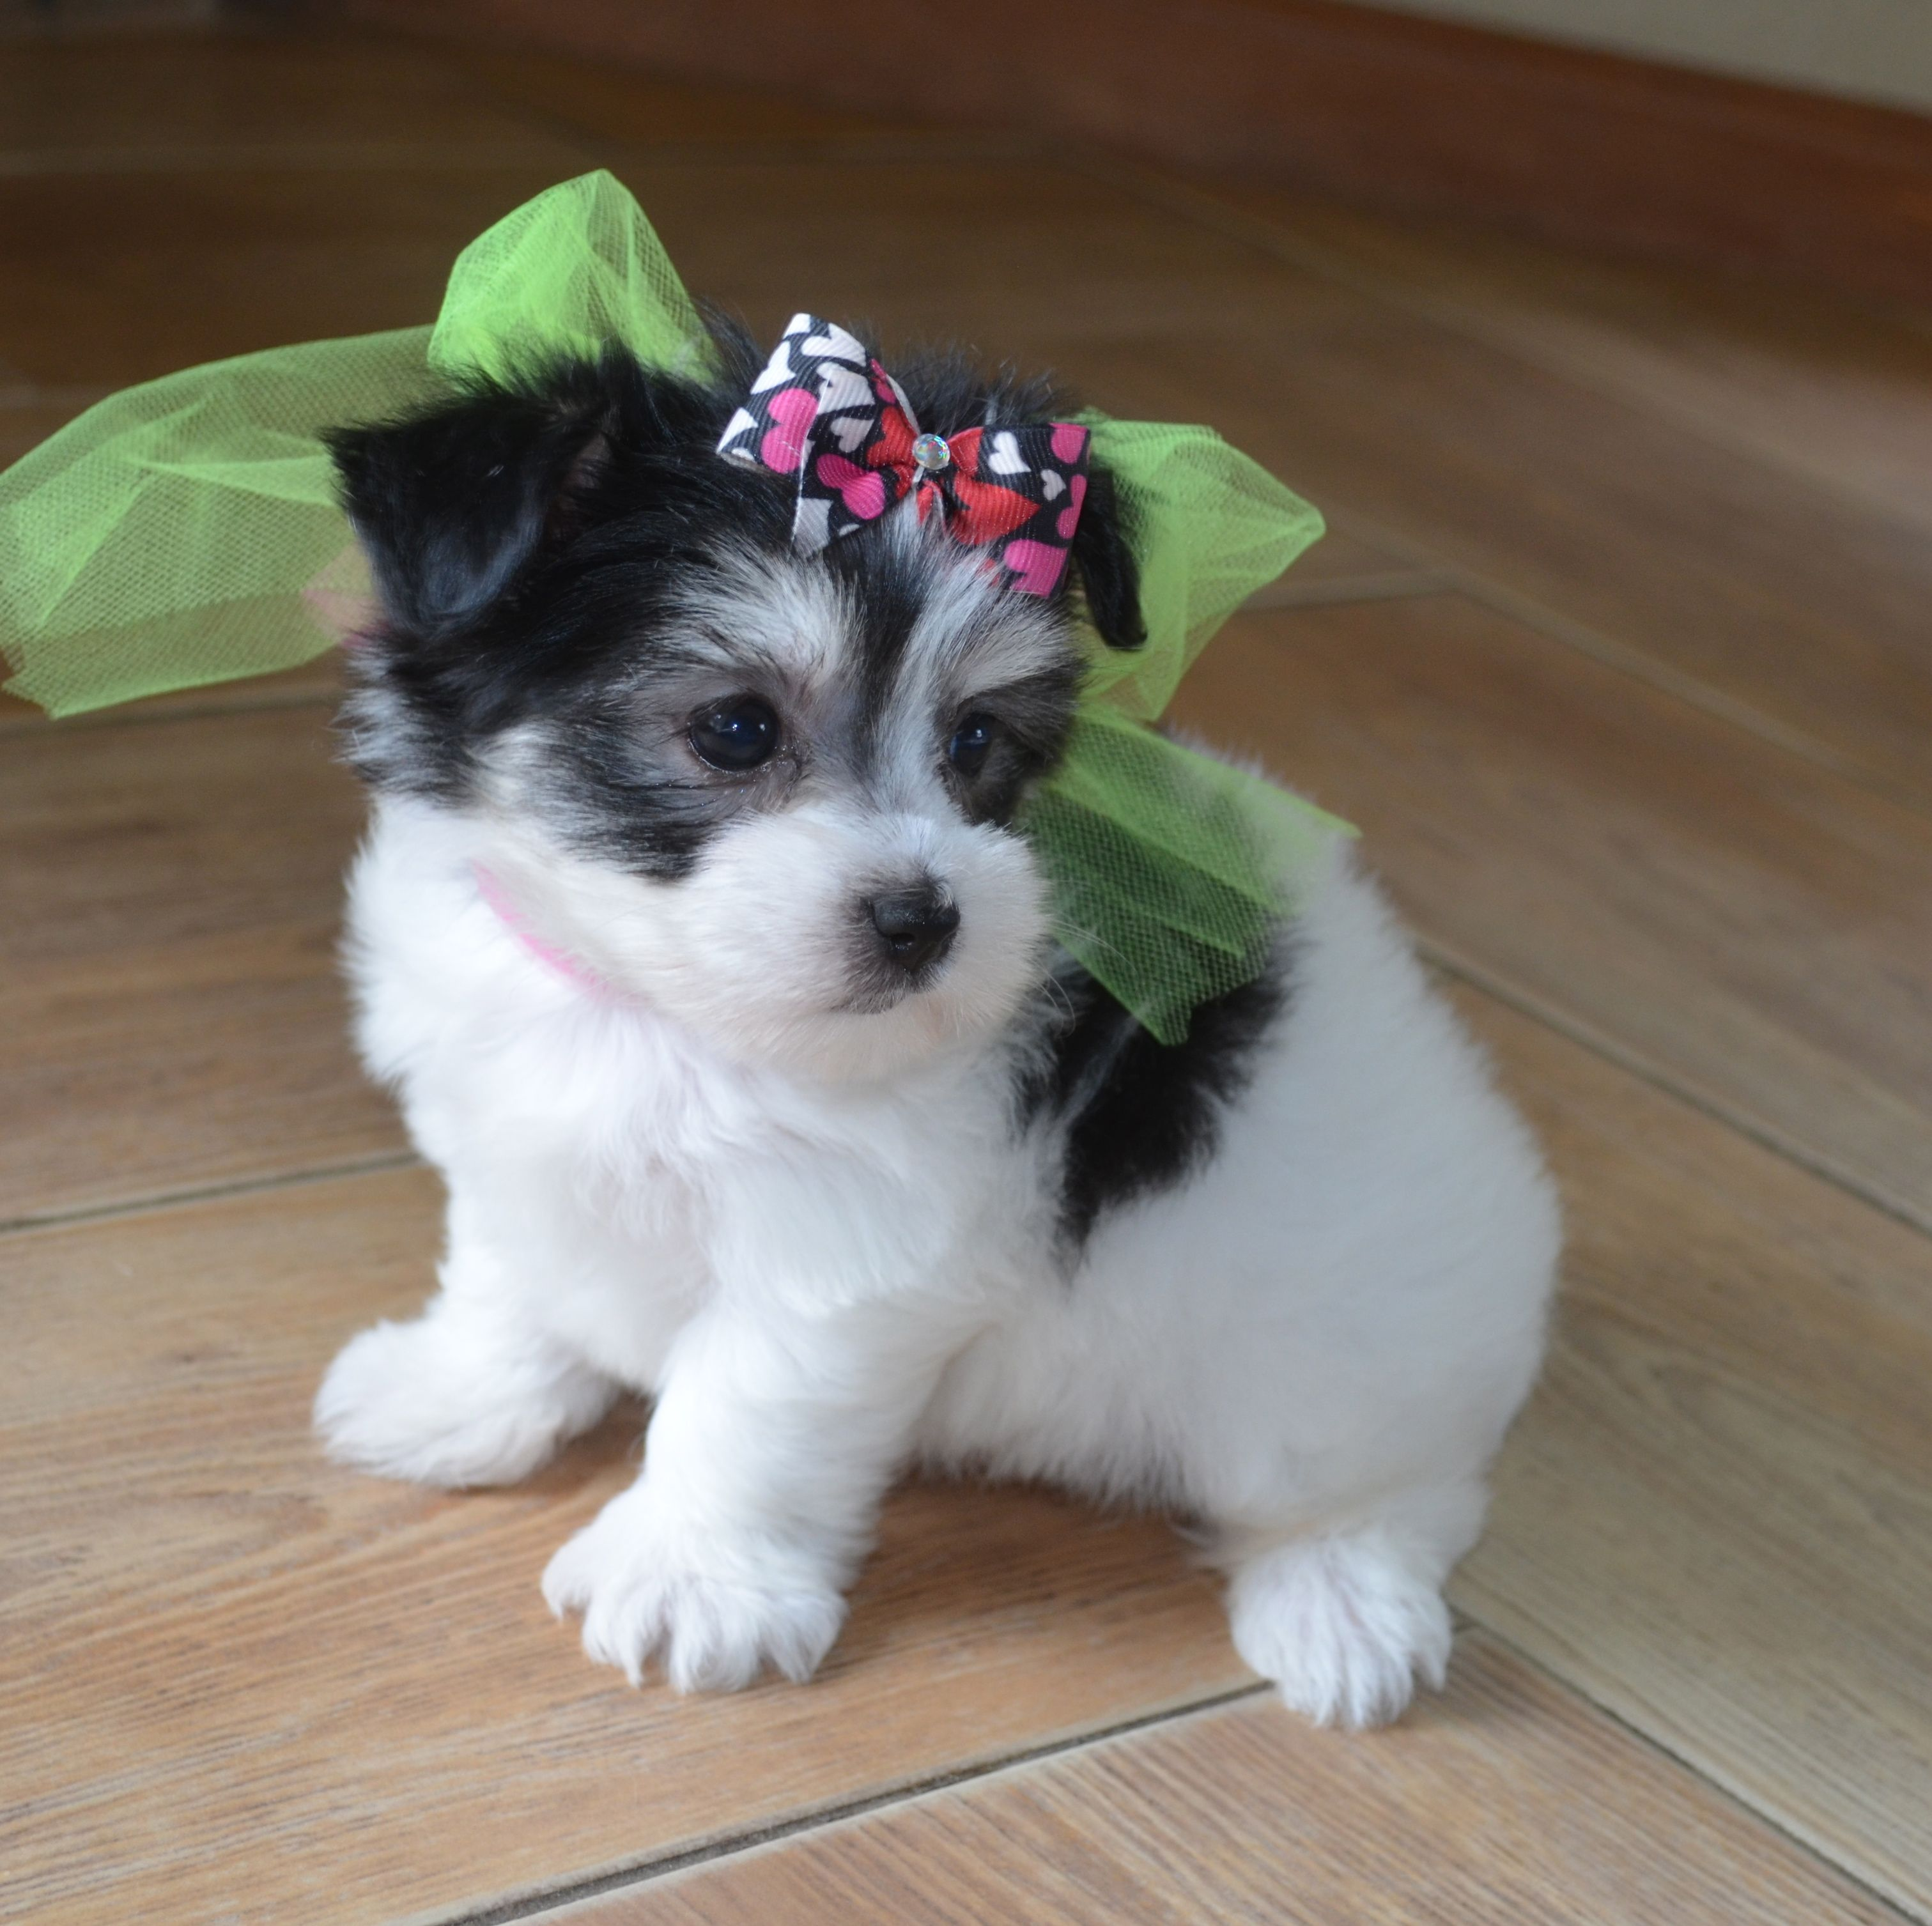 Darling Morkie! So TINY and adorable! www.texasteacuppuppy